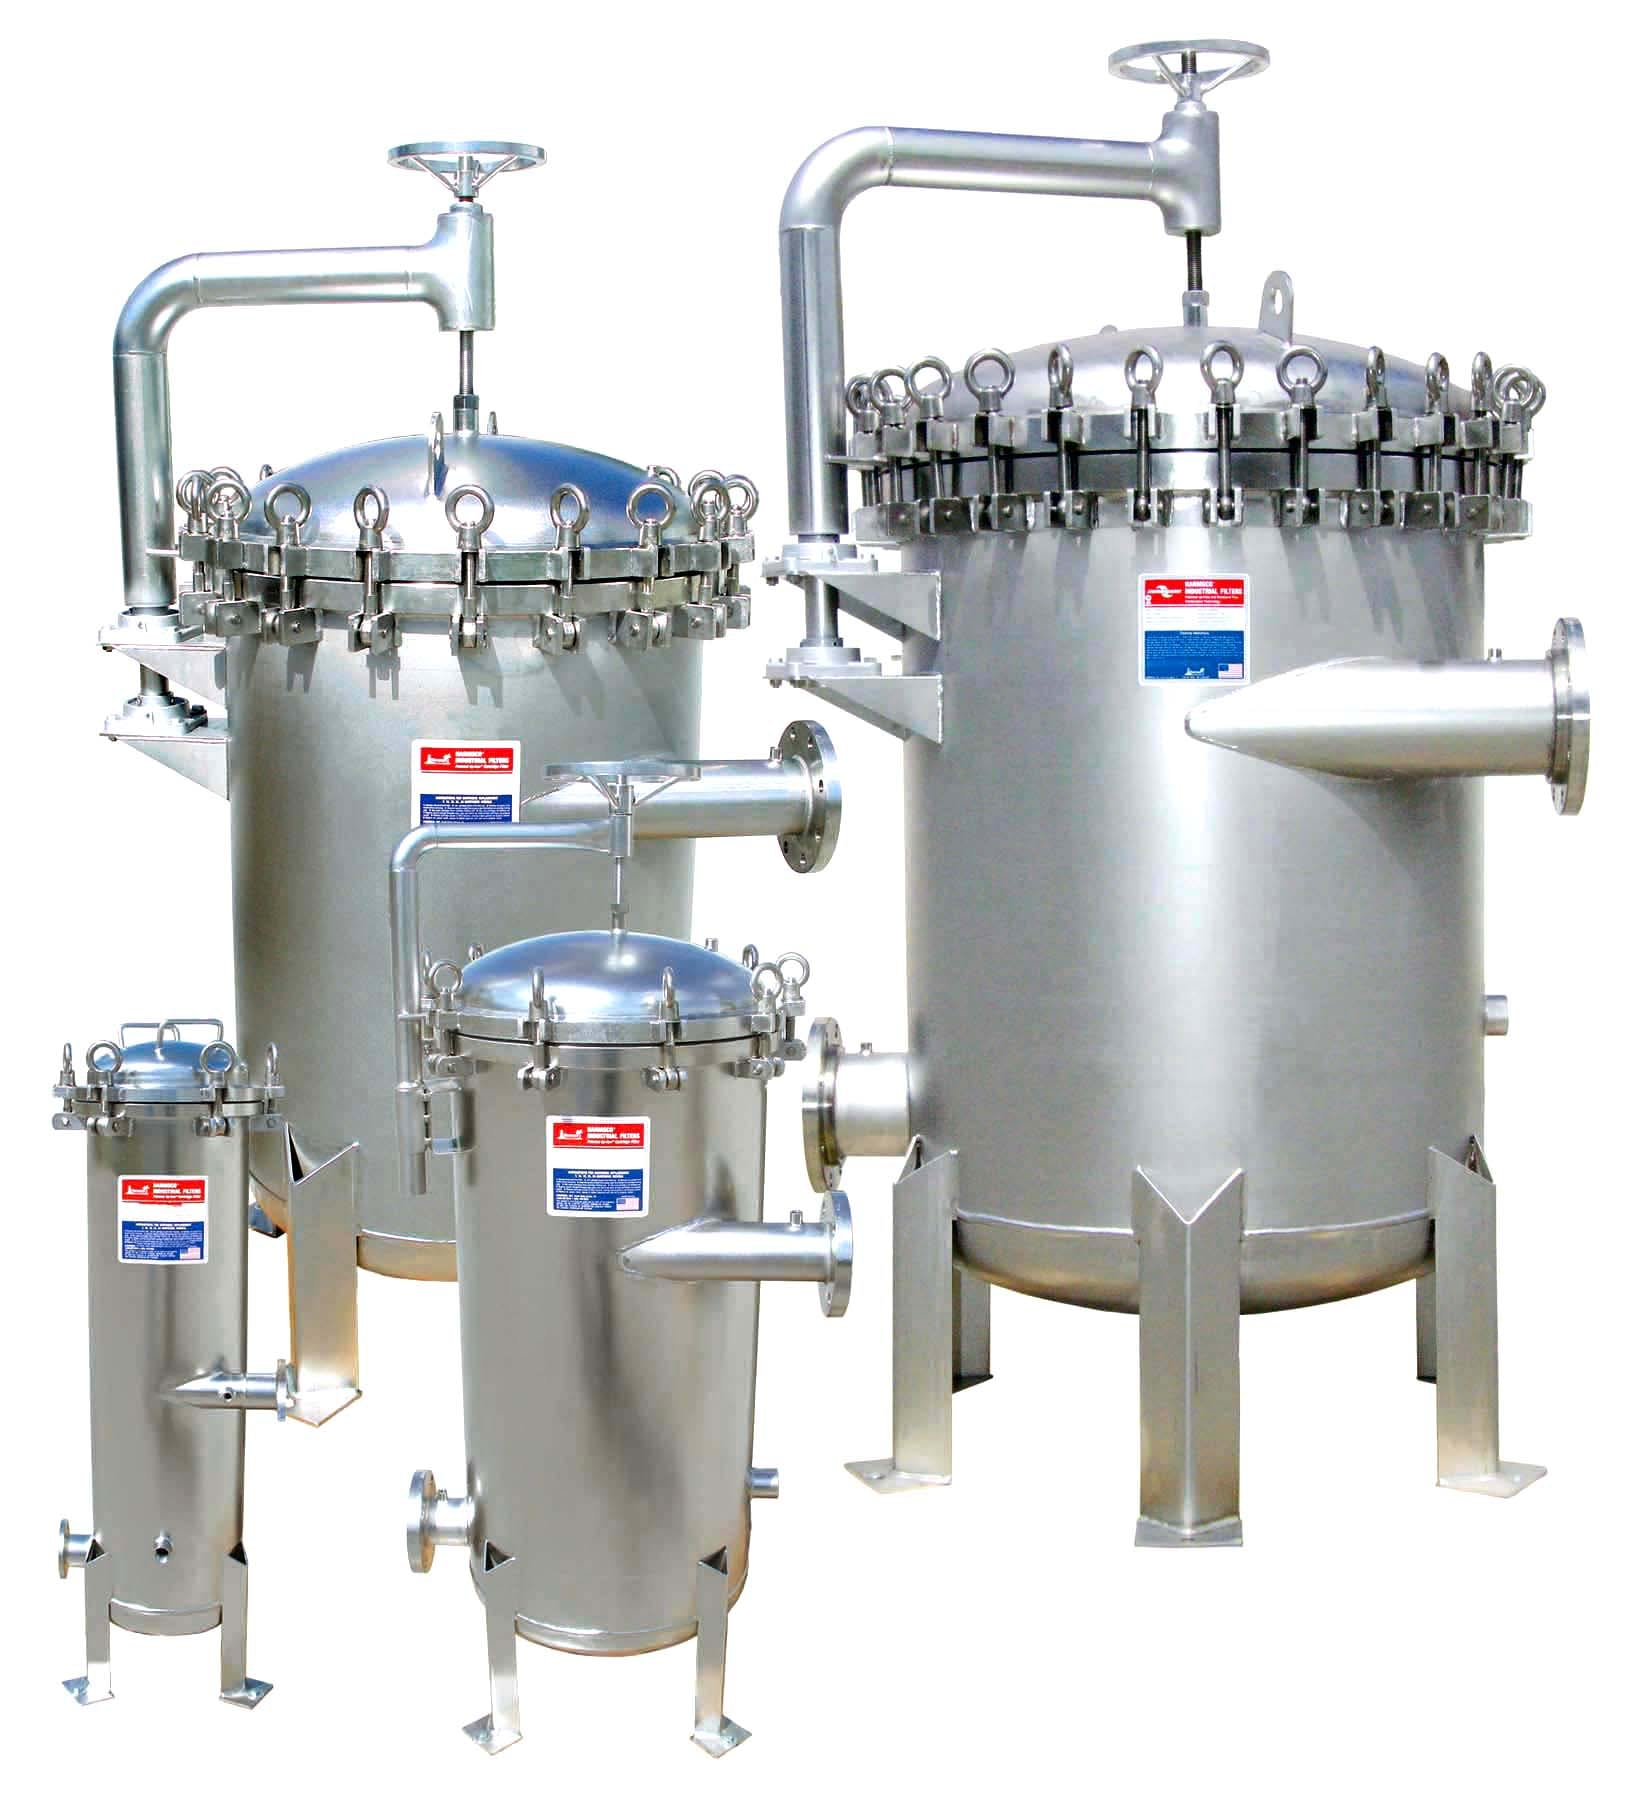 Water Filtration Systems Water filtration equipment sold by US Water Systems